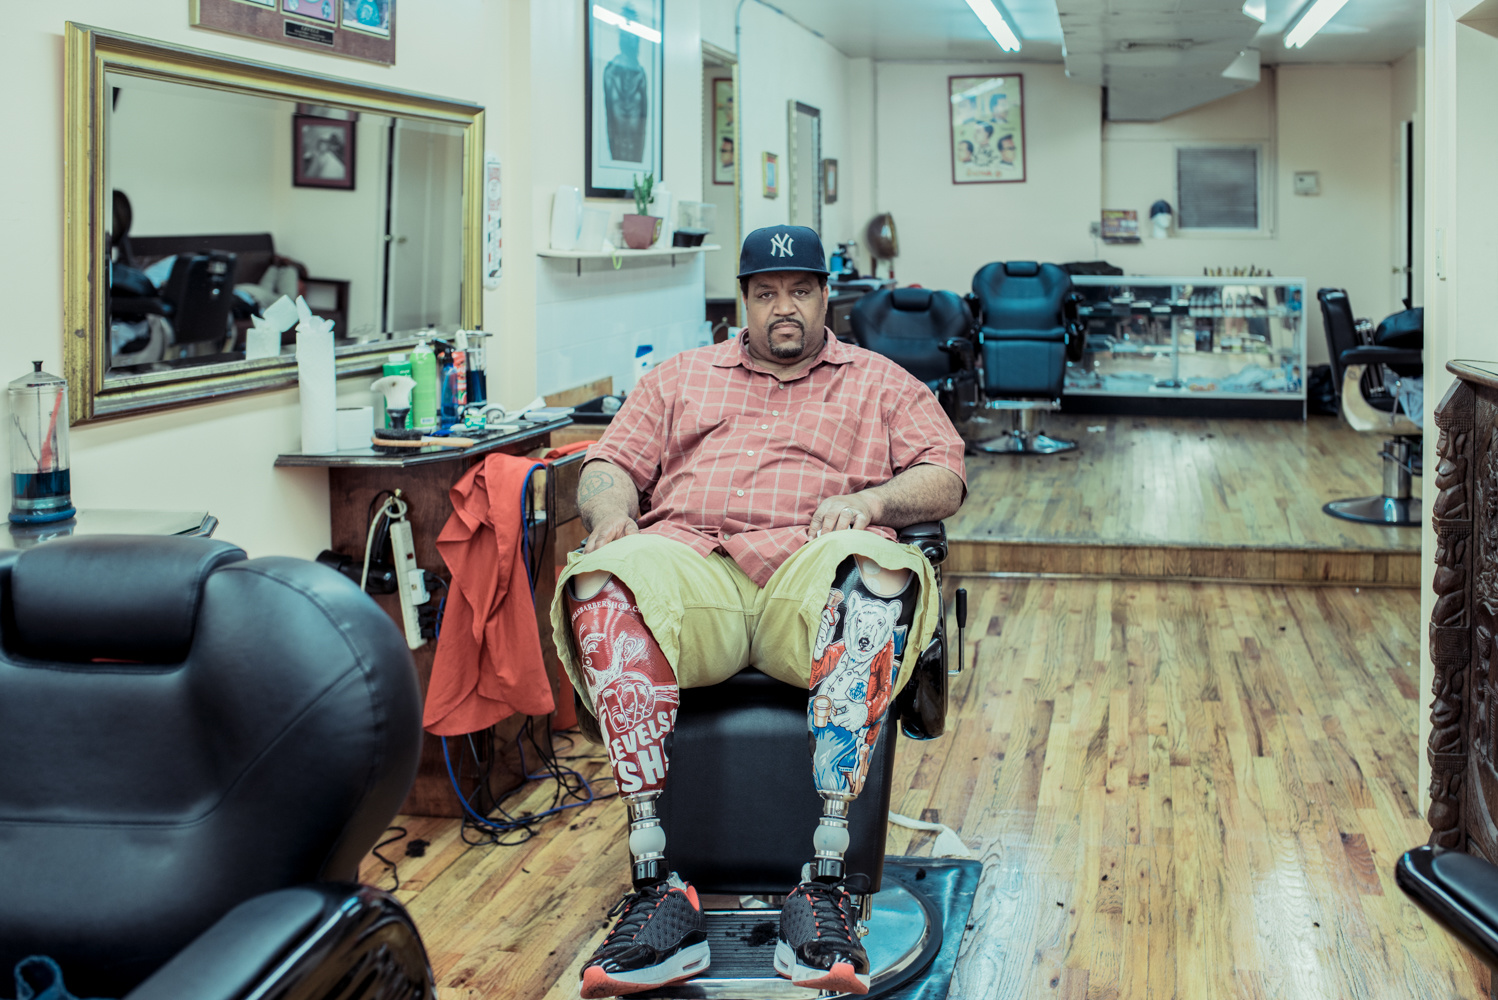 Levels Barbershop Clinton Hill, Brooklyn, 2014 - ​©Franck Bohbot